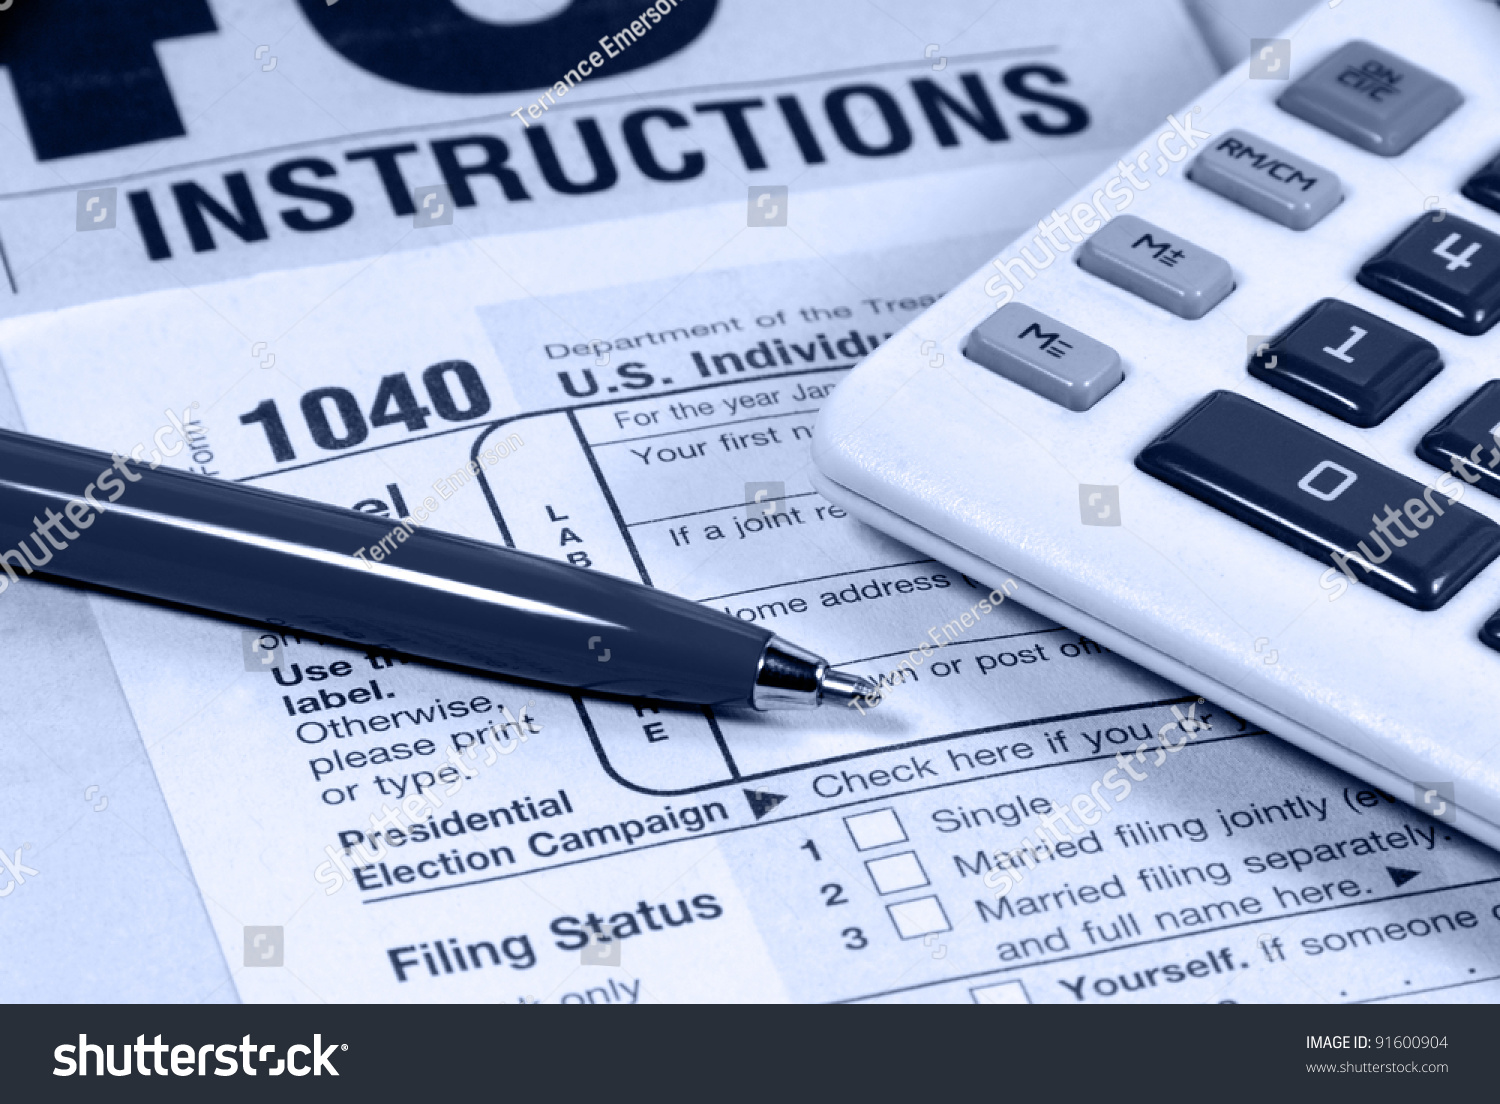 United States Income Tax Form And Instruction Sheet Calculator And Pen Stock Photo